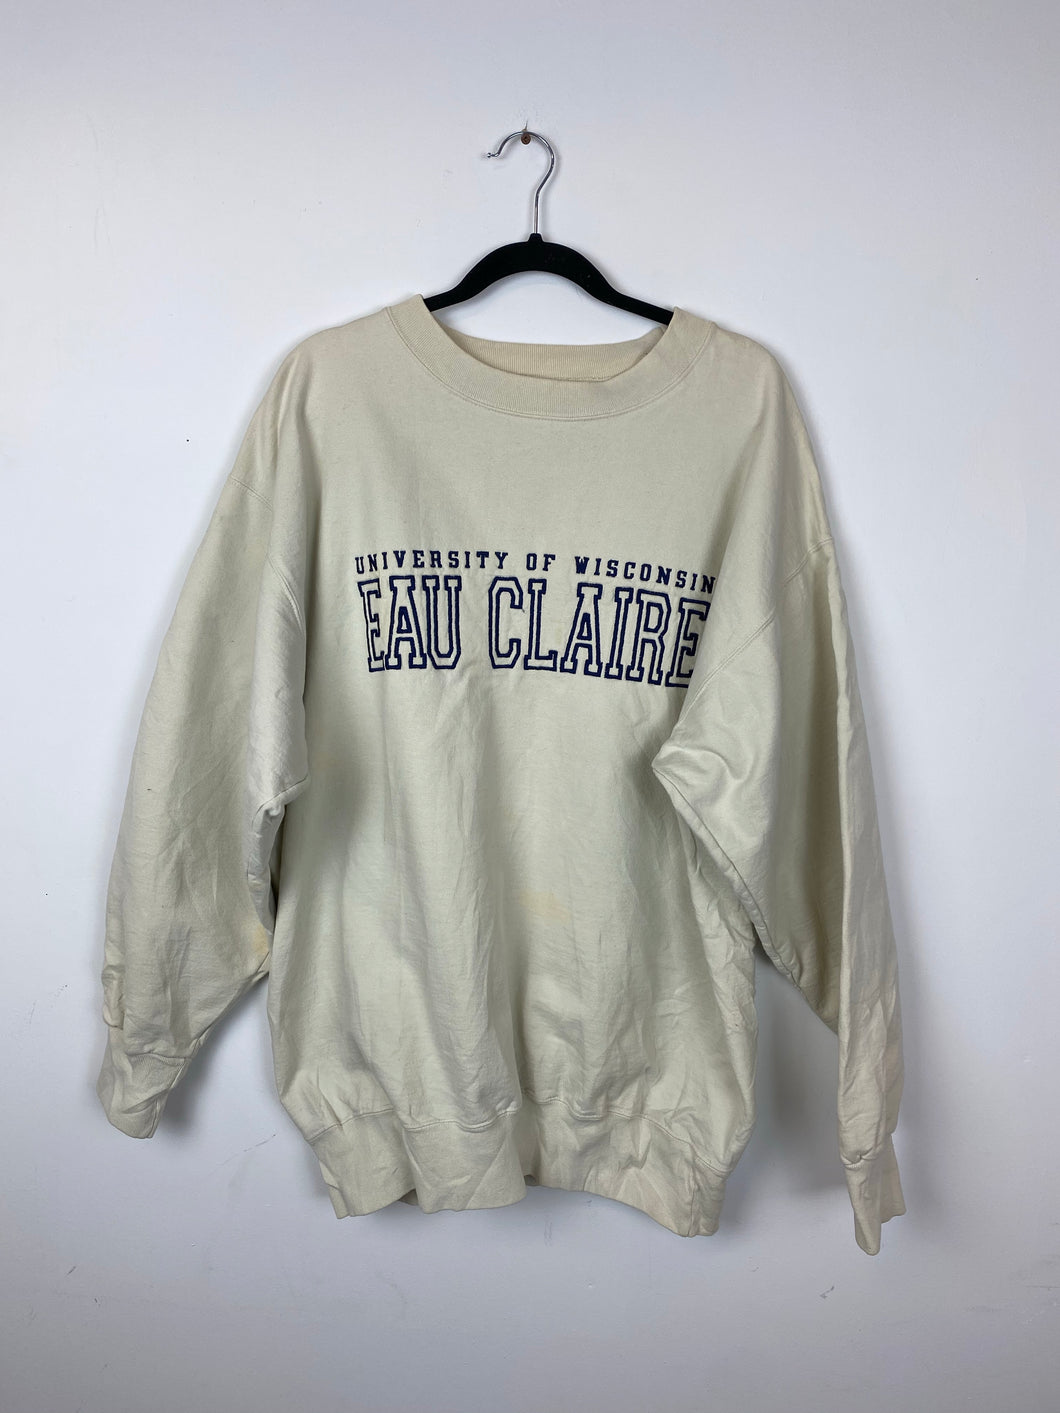 Vintage heavy weight University of Wisconsin crewneck